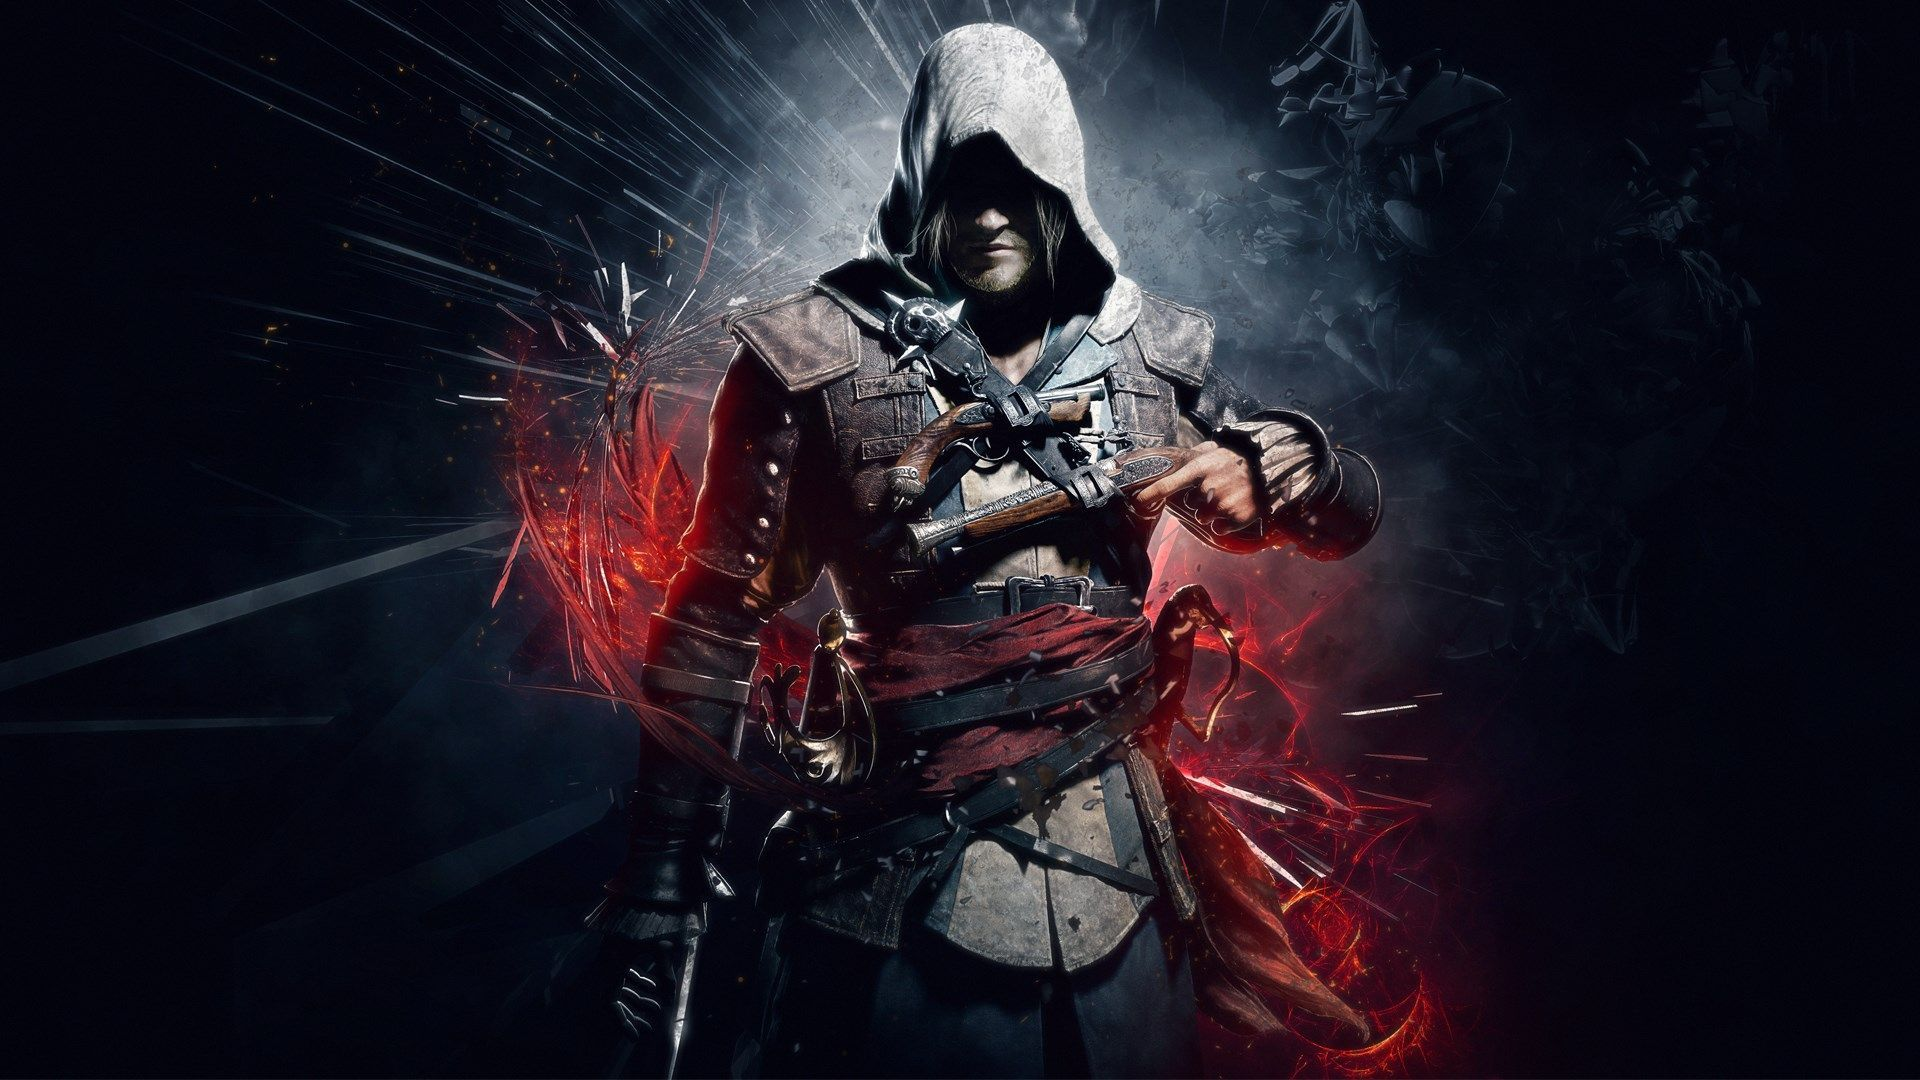 Download Assassins Creed Full Hd Wallpapers Gallery